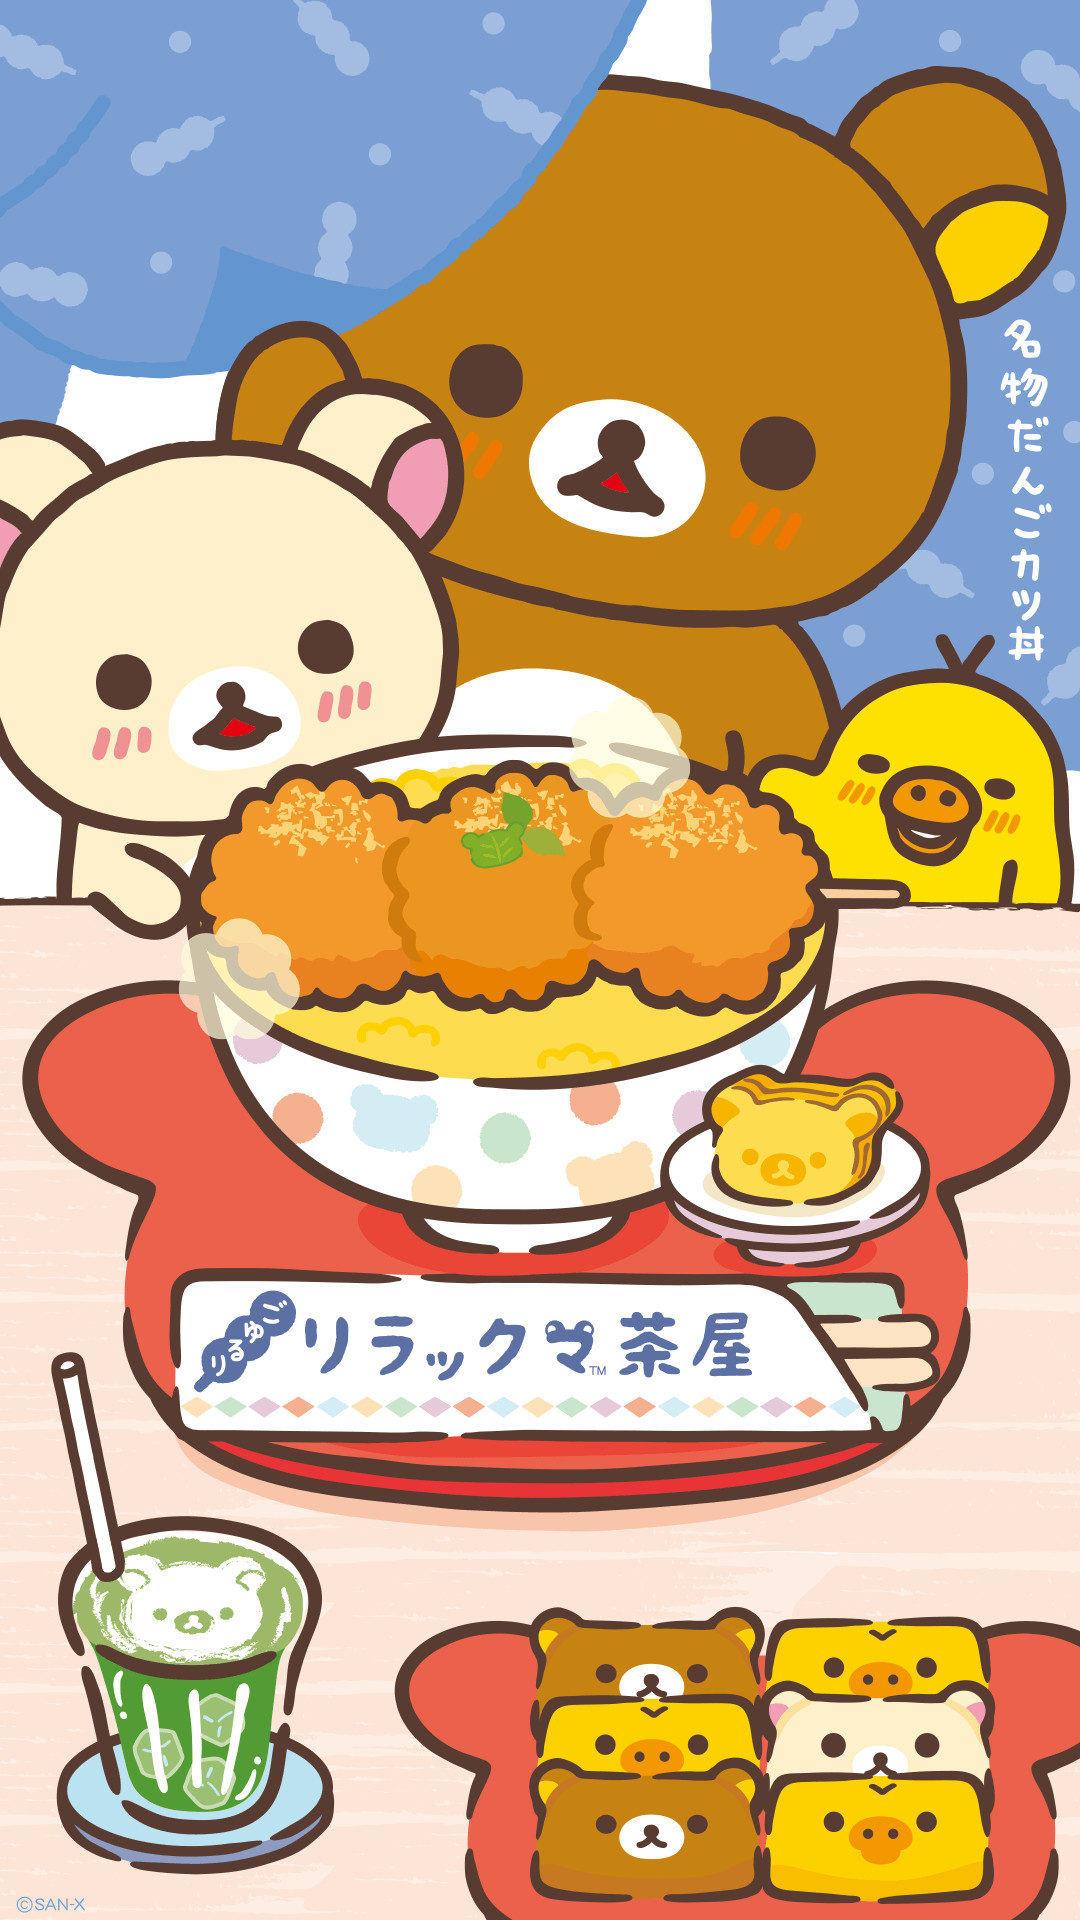 Res: 1080x1920, Rilakkuma Chaya Japanese Tea House Smartphone Wallpaper